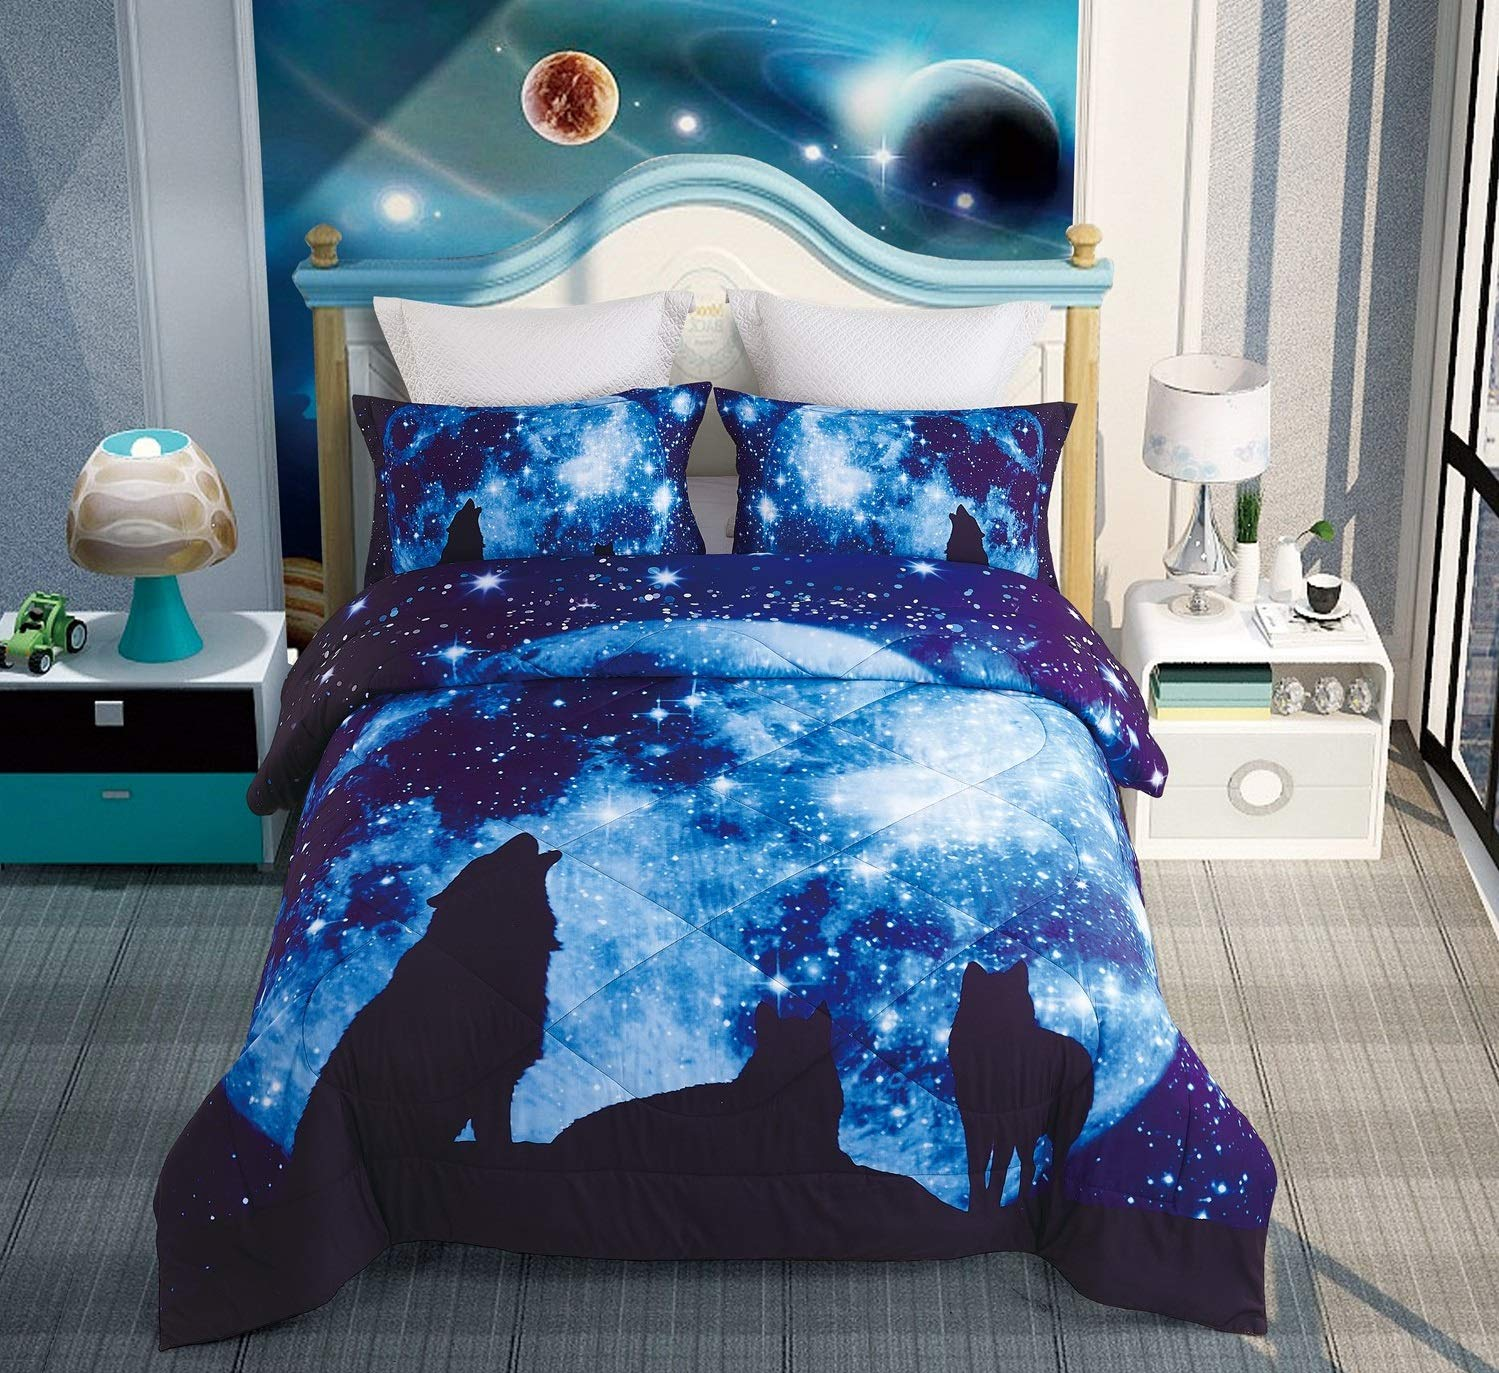 DECMAY 3D Galaxy Wolf Bedding Twin Wolf Blue Moonlight 3 Pieces with 1 Comforter and 2 Pillow Cases Box Stitched Durable Quilt Set for Children and Adults,Twin Size